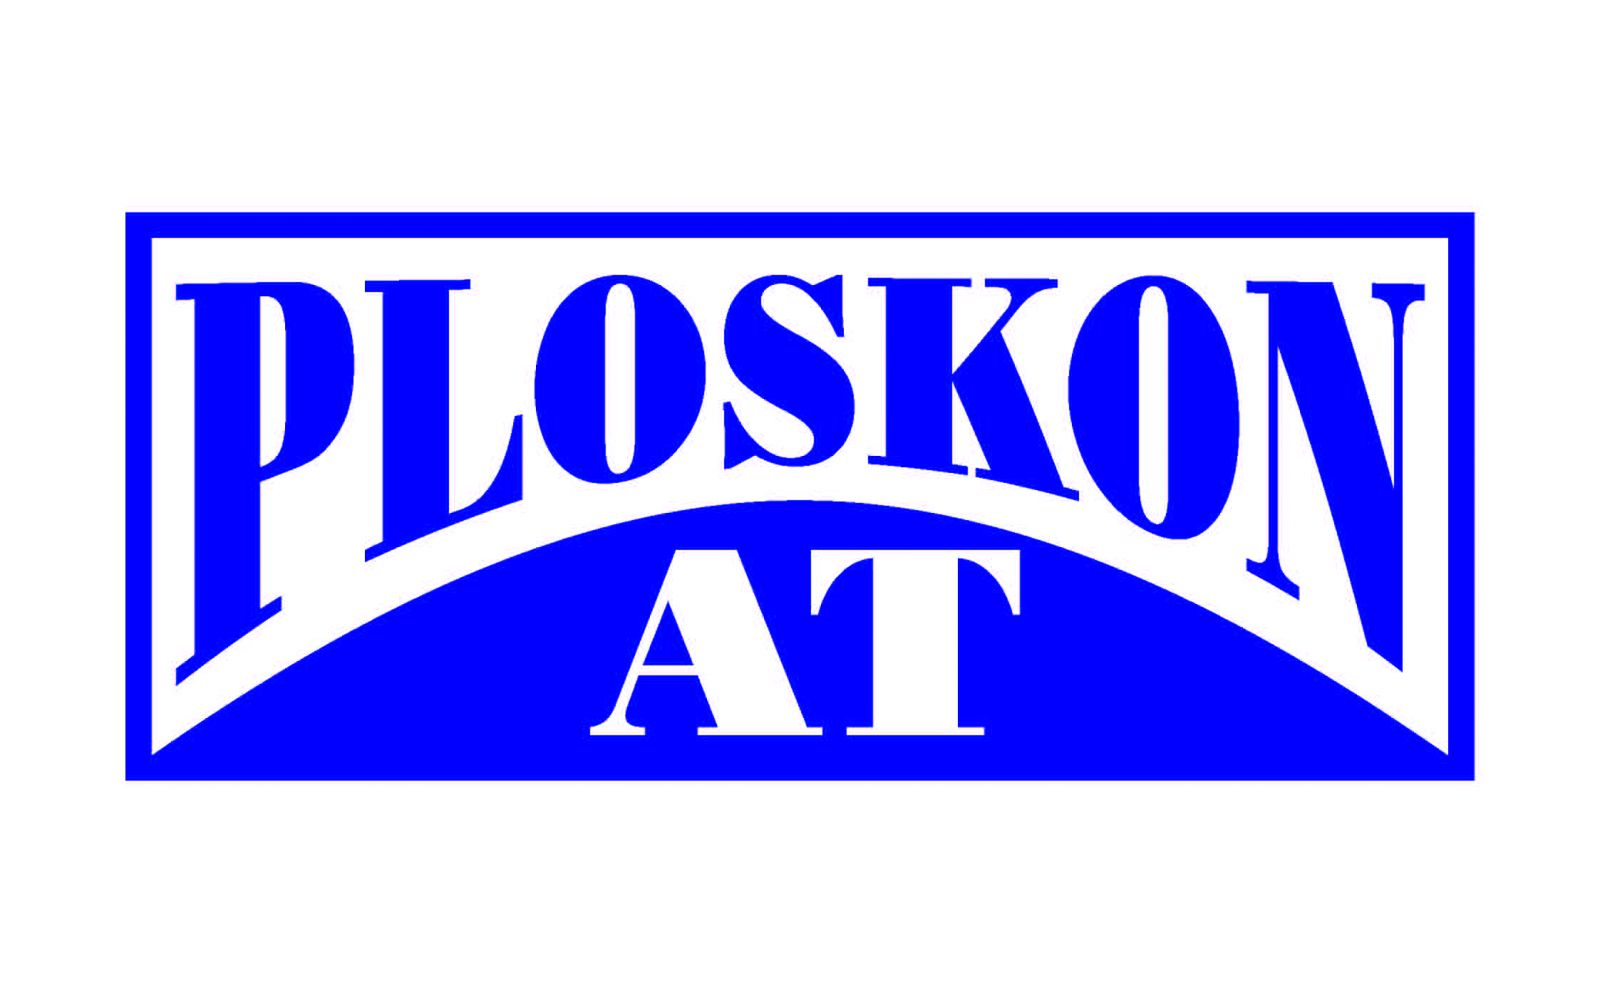 PLOSKON AT